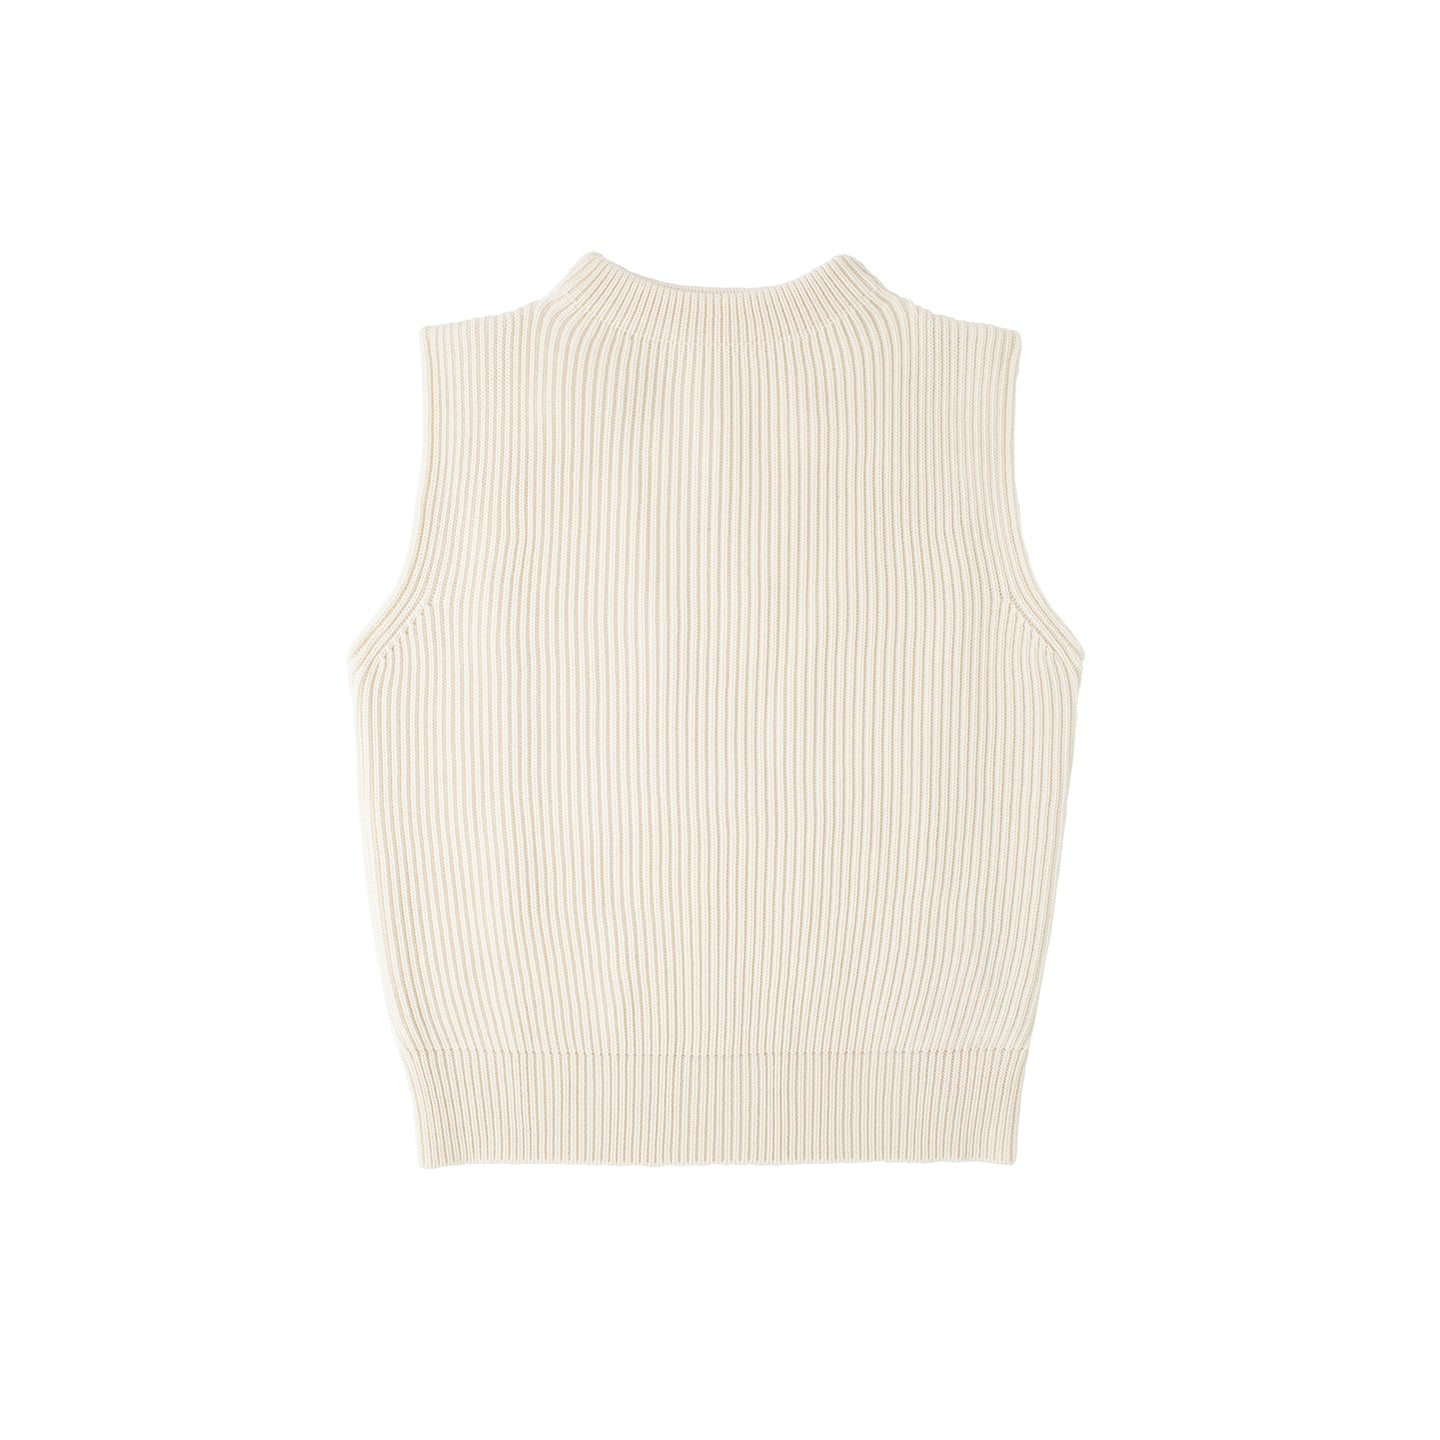 Navy Vest - Off-white